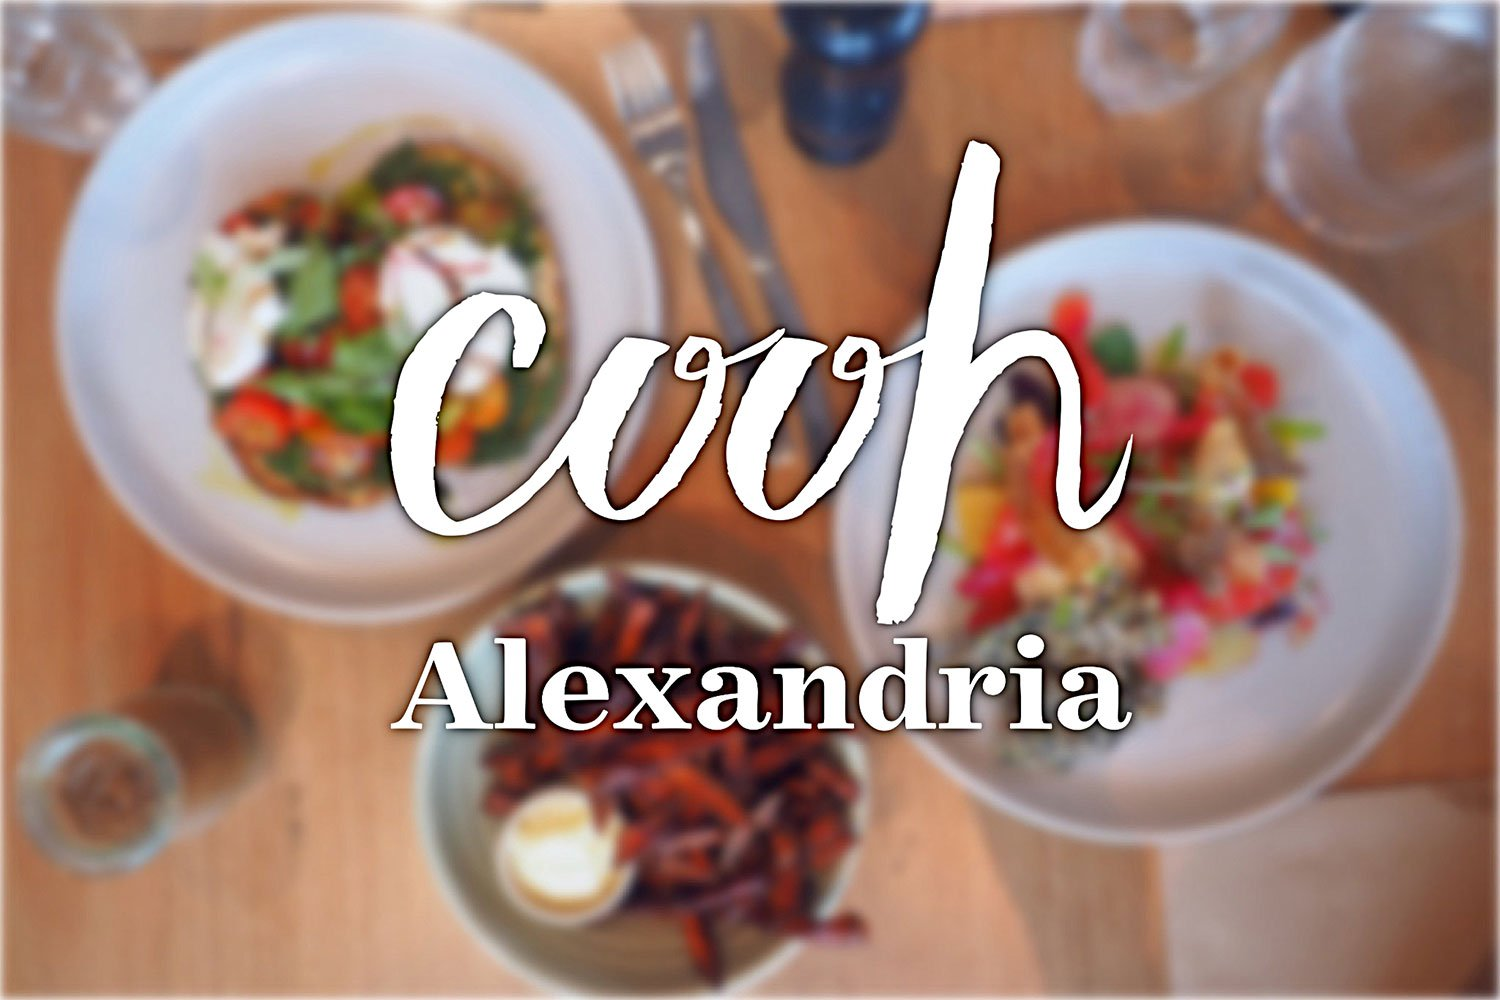 Sydney Food Blog Review of COOH, Alexandria